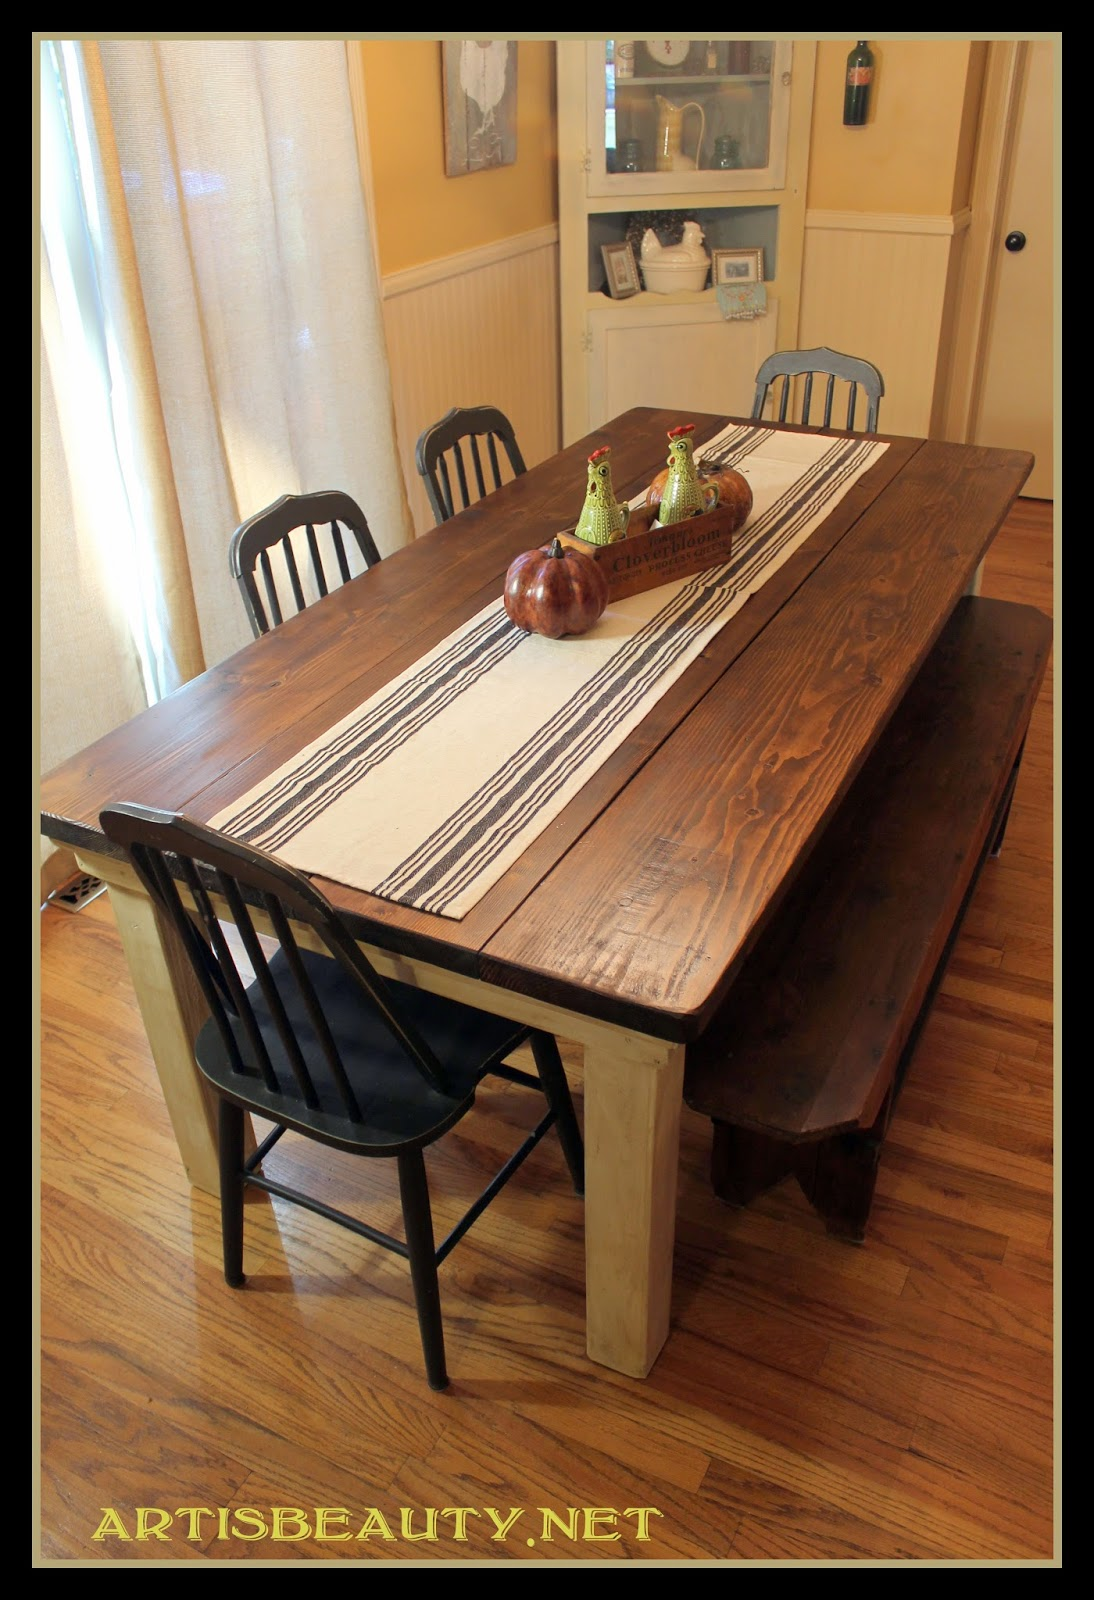 Remodelaholic build a farmhouse table for under 100 for Kitchen table designs plans